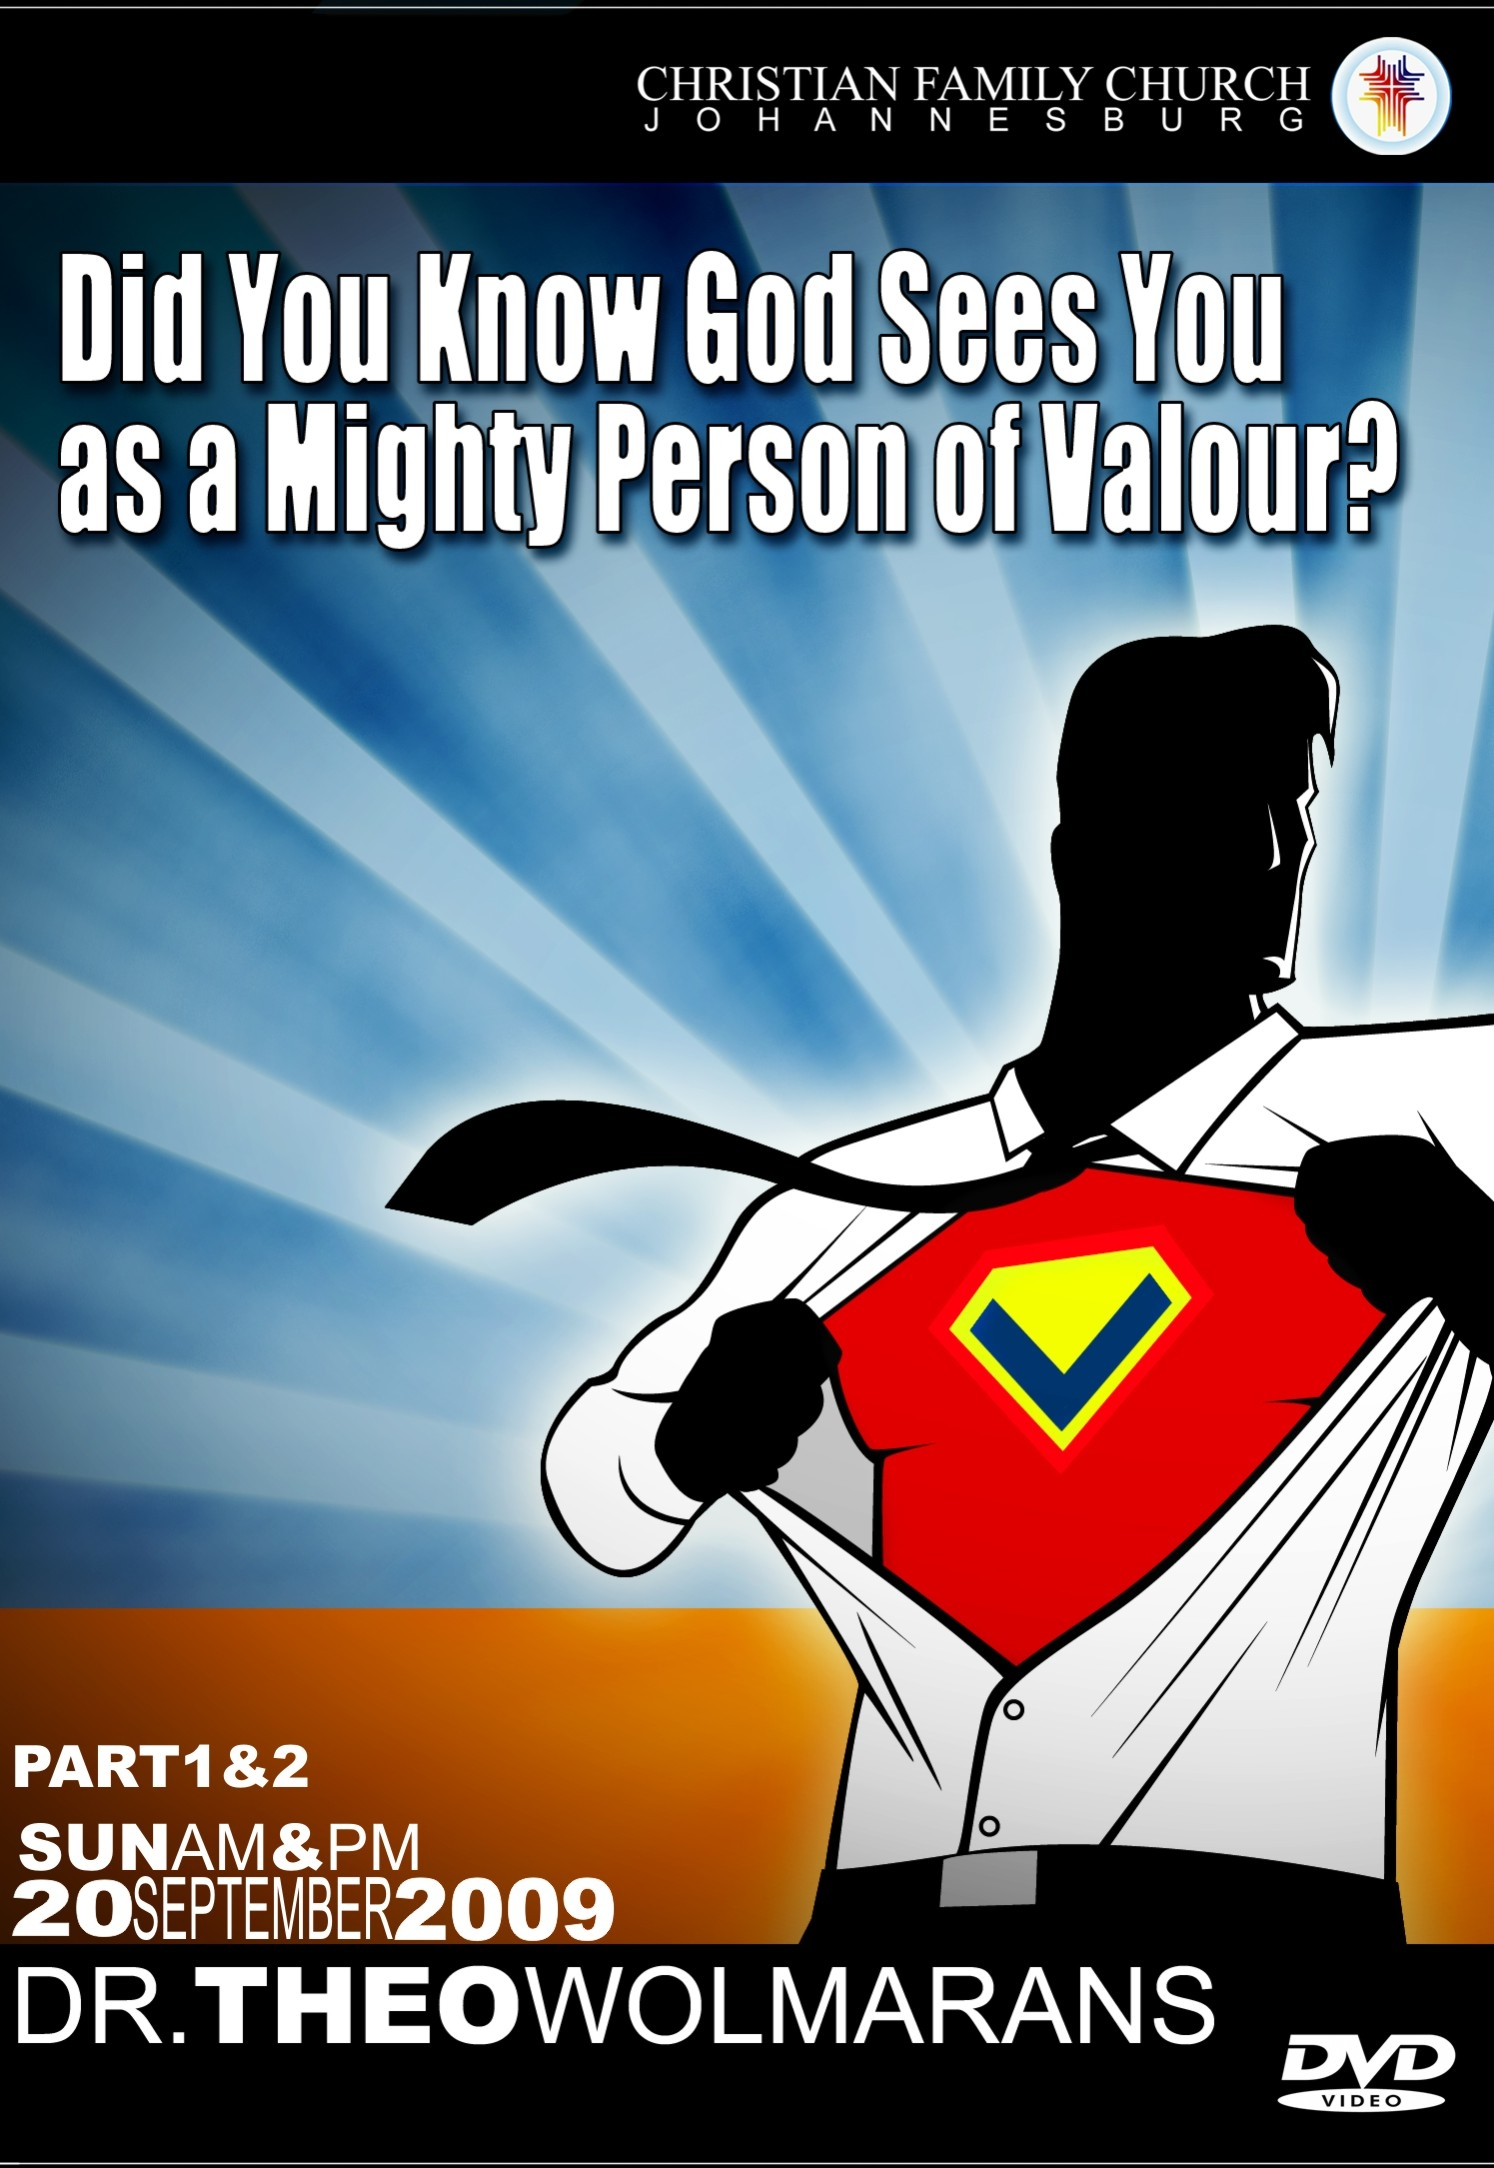 Did You Know That God Sees You As A Mighty Person of Valour